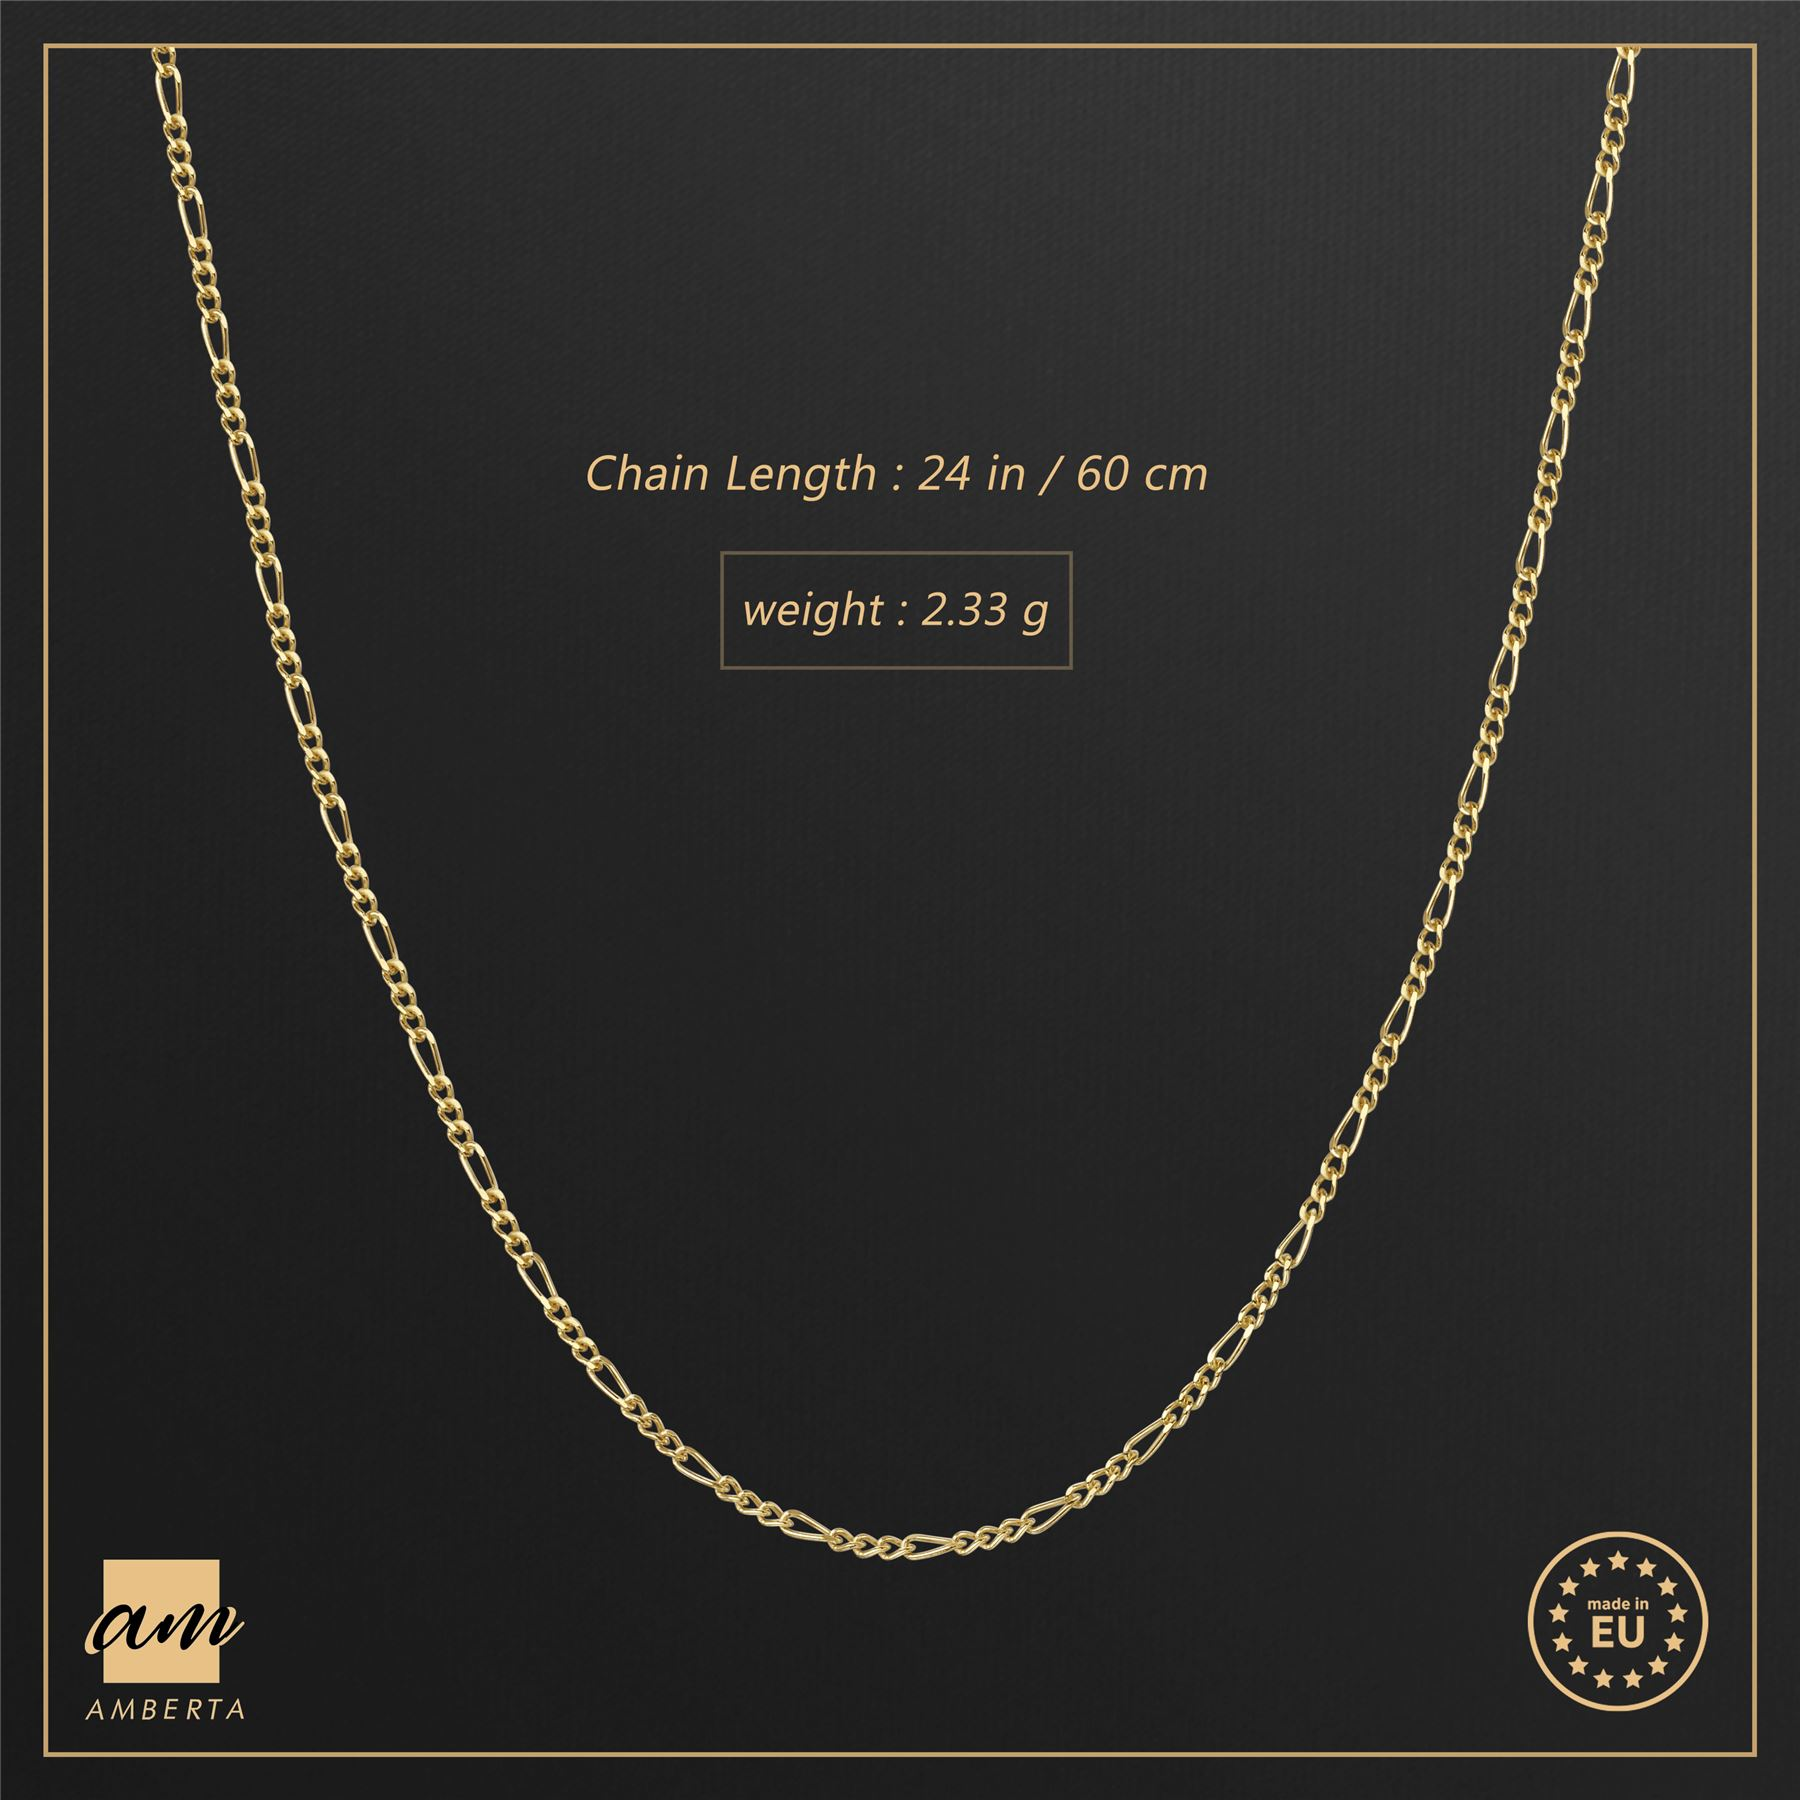 Amberta-Genuine-Gold-Plated-on-Real-925-Sterling-Silver-Necklace-Chain-Italy 縮圖 34